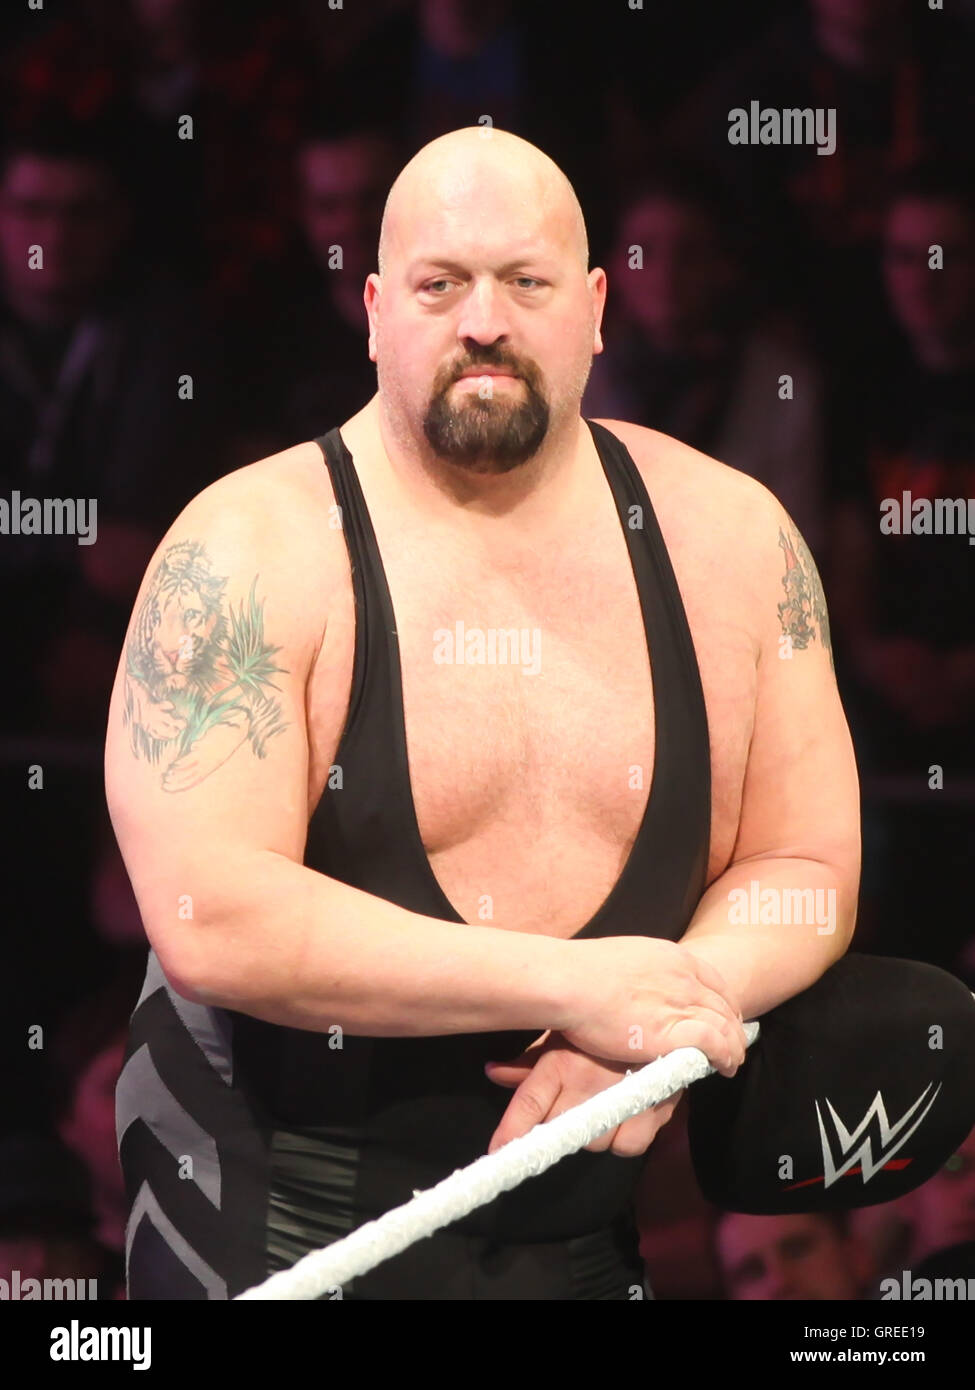 Wwe Superstar The Big Show - Stock Image